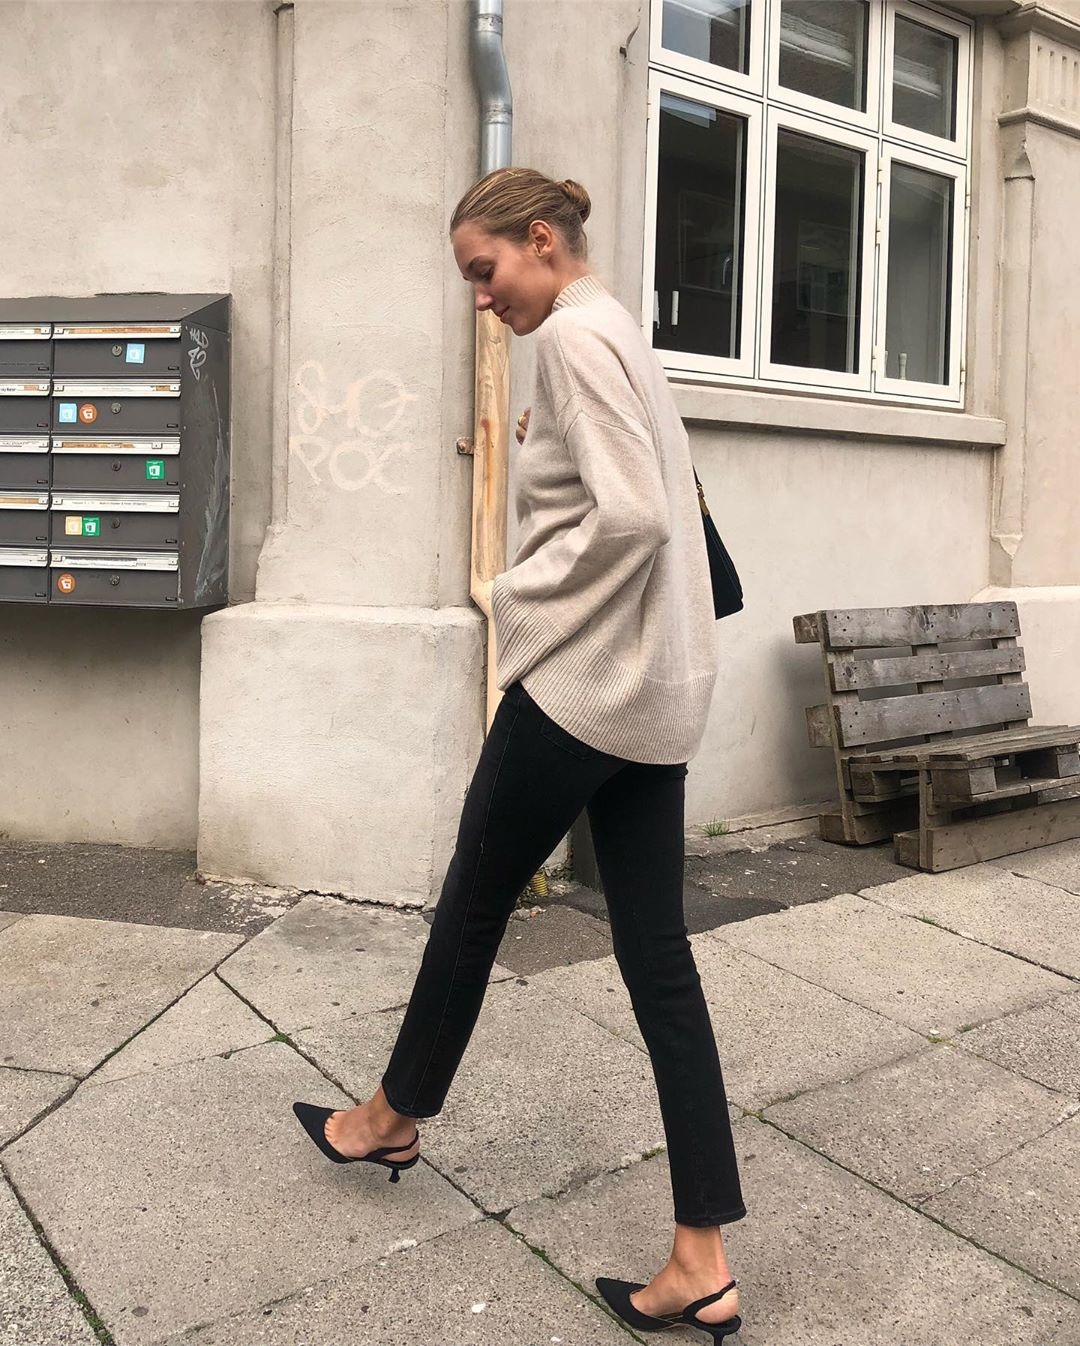 Stylish Fall Outfit Idea From Instagram — Oversized Neutral Sweater, Black Skinny Jeans, and Slingback Heels